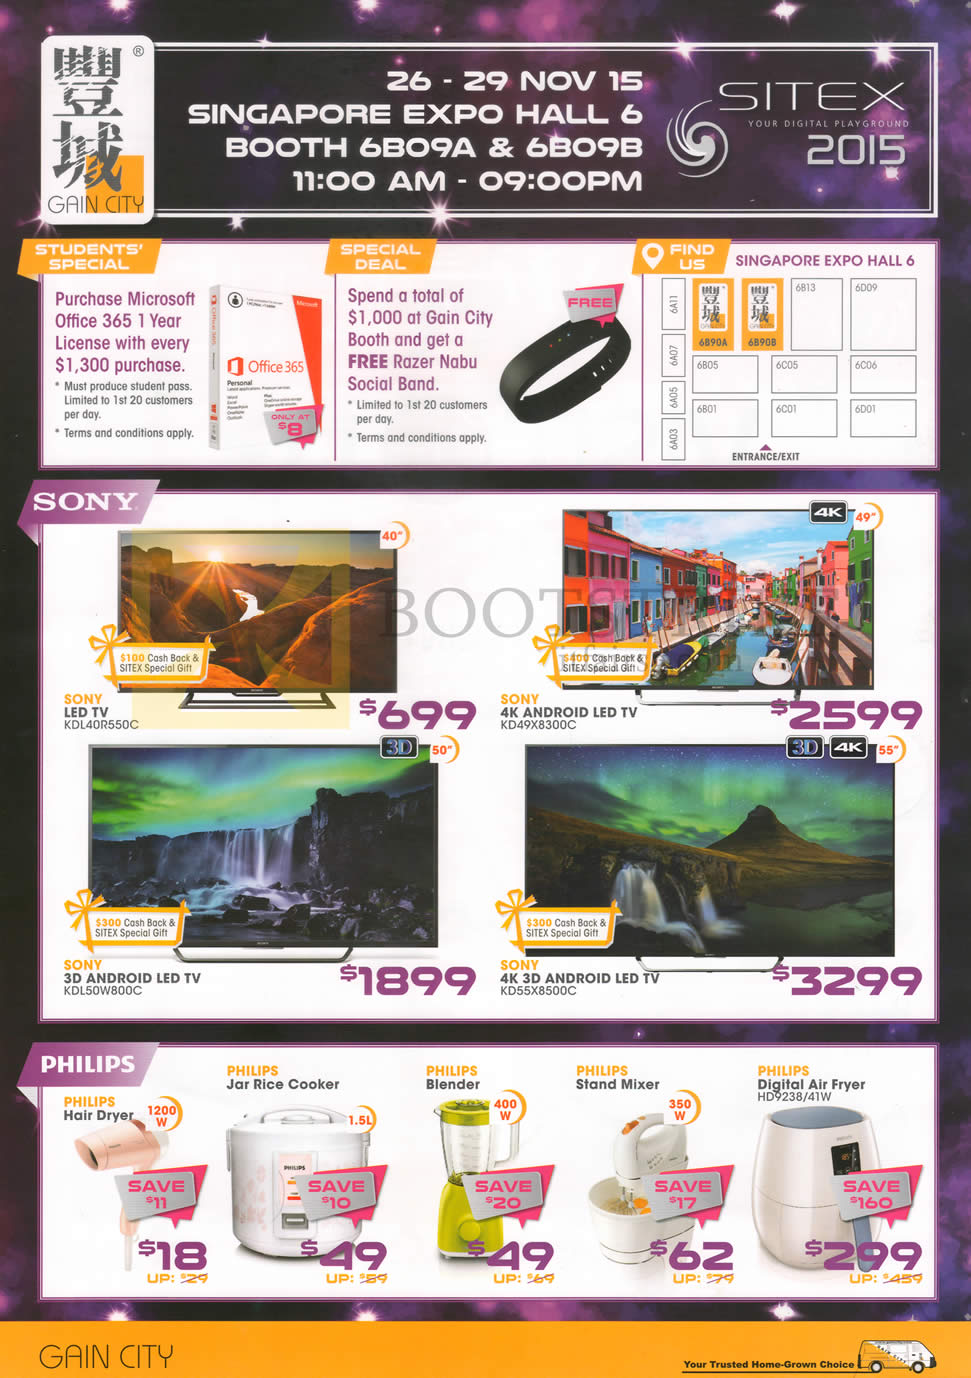 SITEX 2015 price list image brochure of Gain City Sony TVs, KDL-40R550C, KD49X8300C, KDL50W800C, KD55X8500C, Philips Kitchen Appliances Hair Dryer, Jar Rice Cooker, Blender, Stand Mixer, Digital Air Fryer